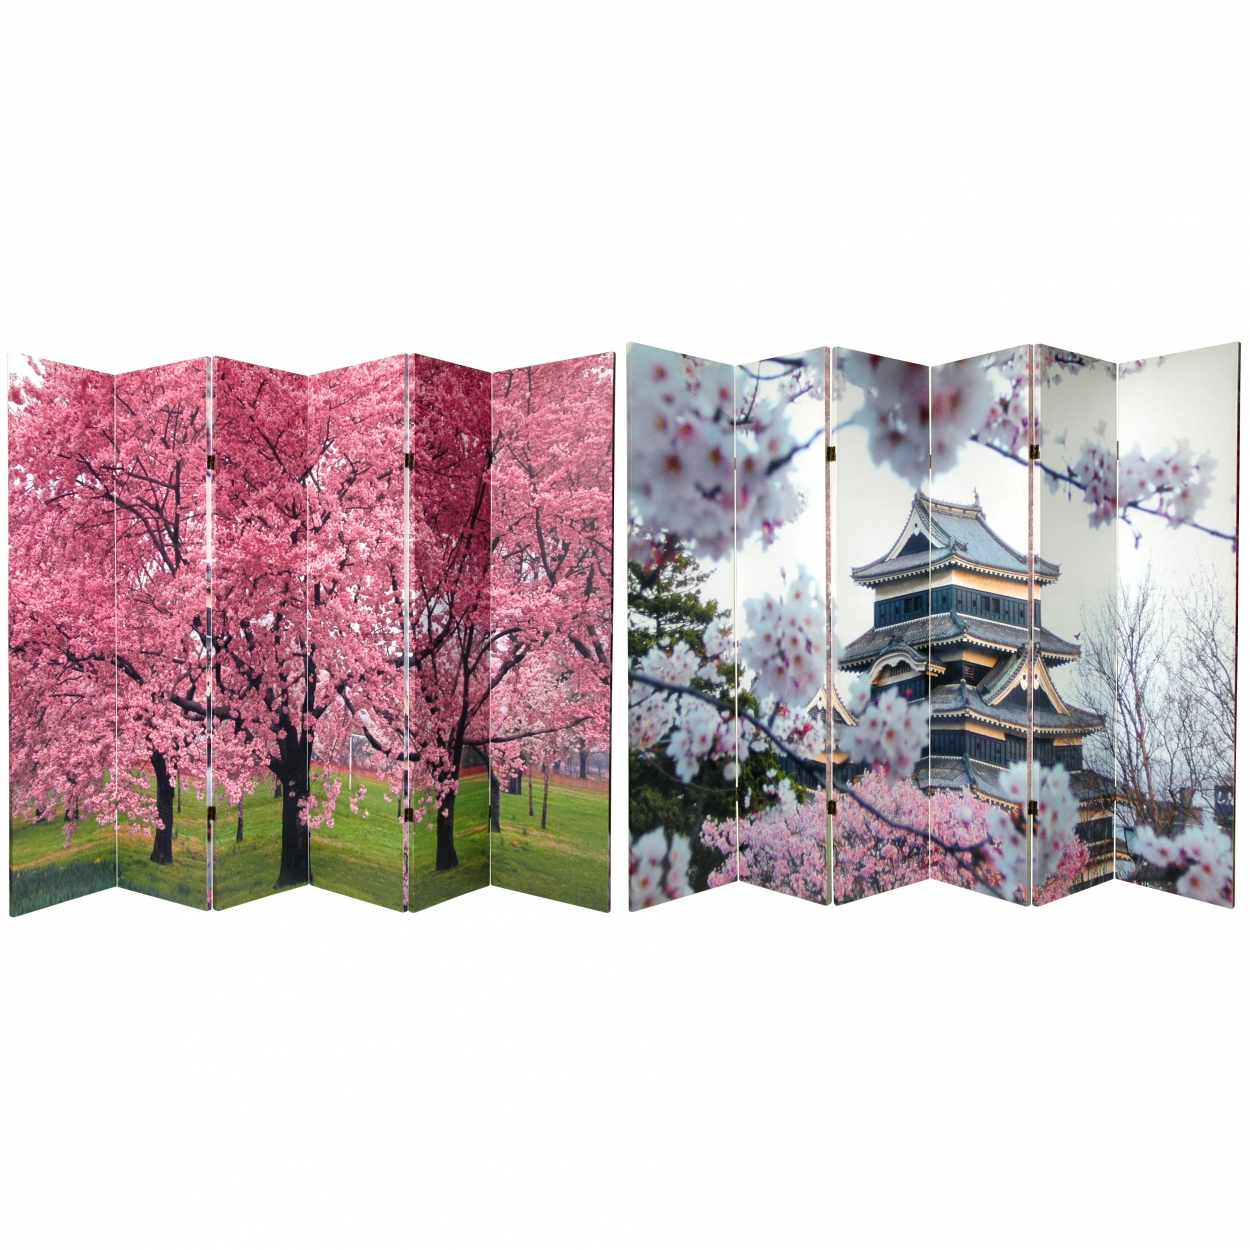 Buy 6 ft Tall Double Sided Cherry Blossoms Canvas Room Divider